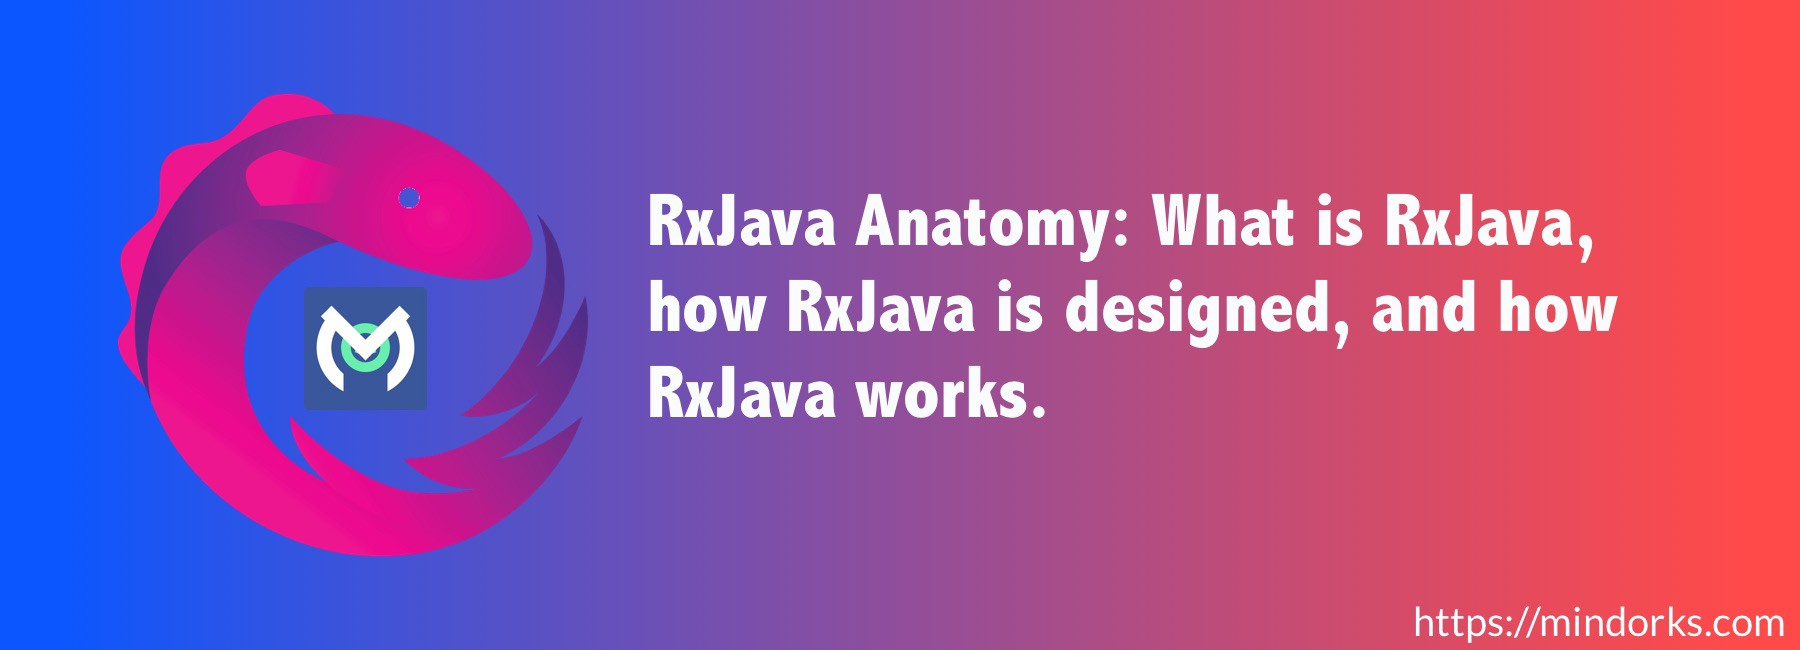 RxJava Anatomy: What is RxJava, how RxJava is designed, and how ...